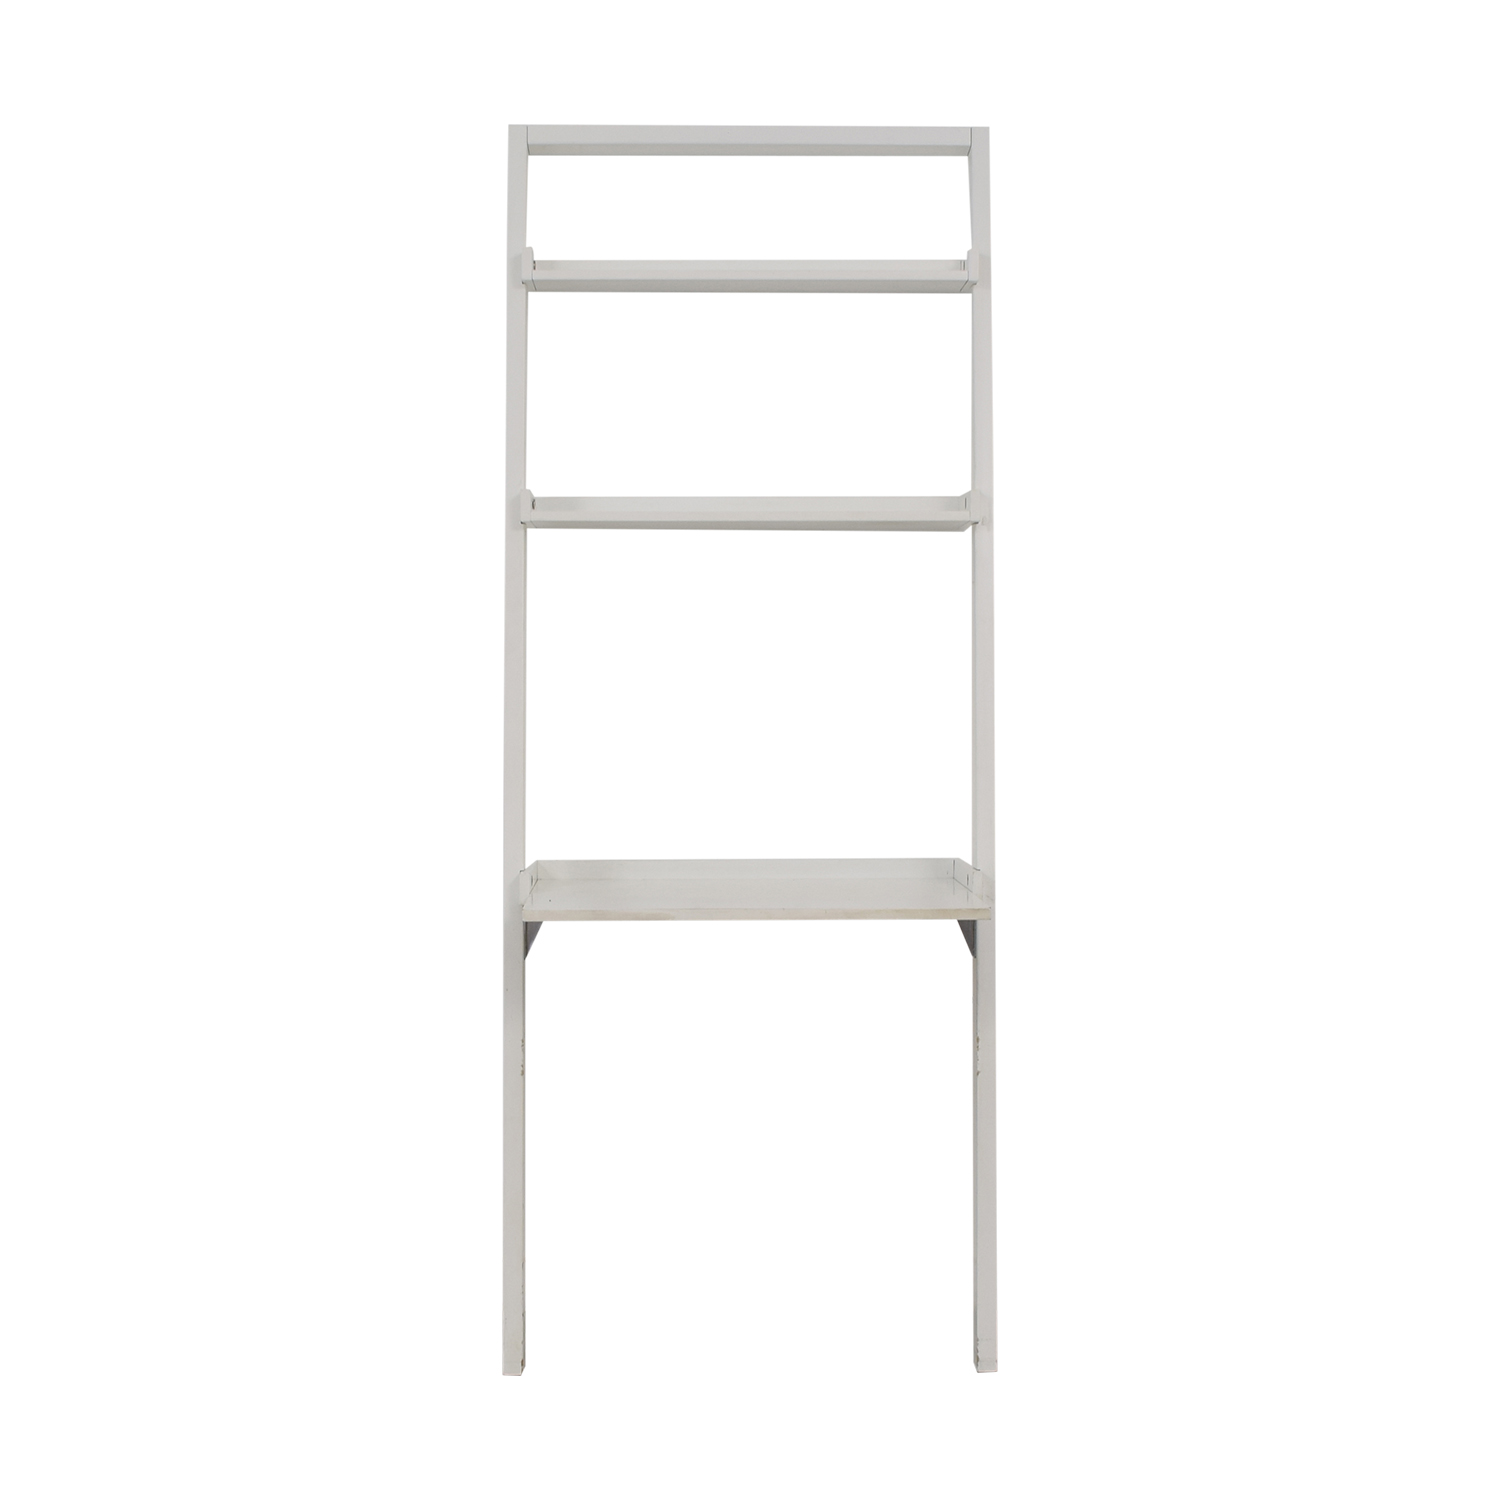 Crate & Barrel White Leaning Desk / Tables